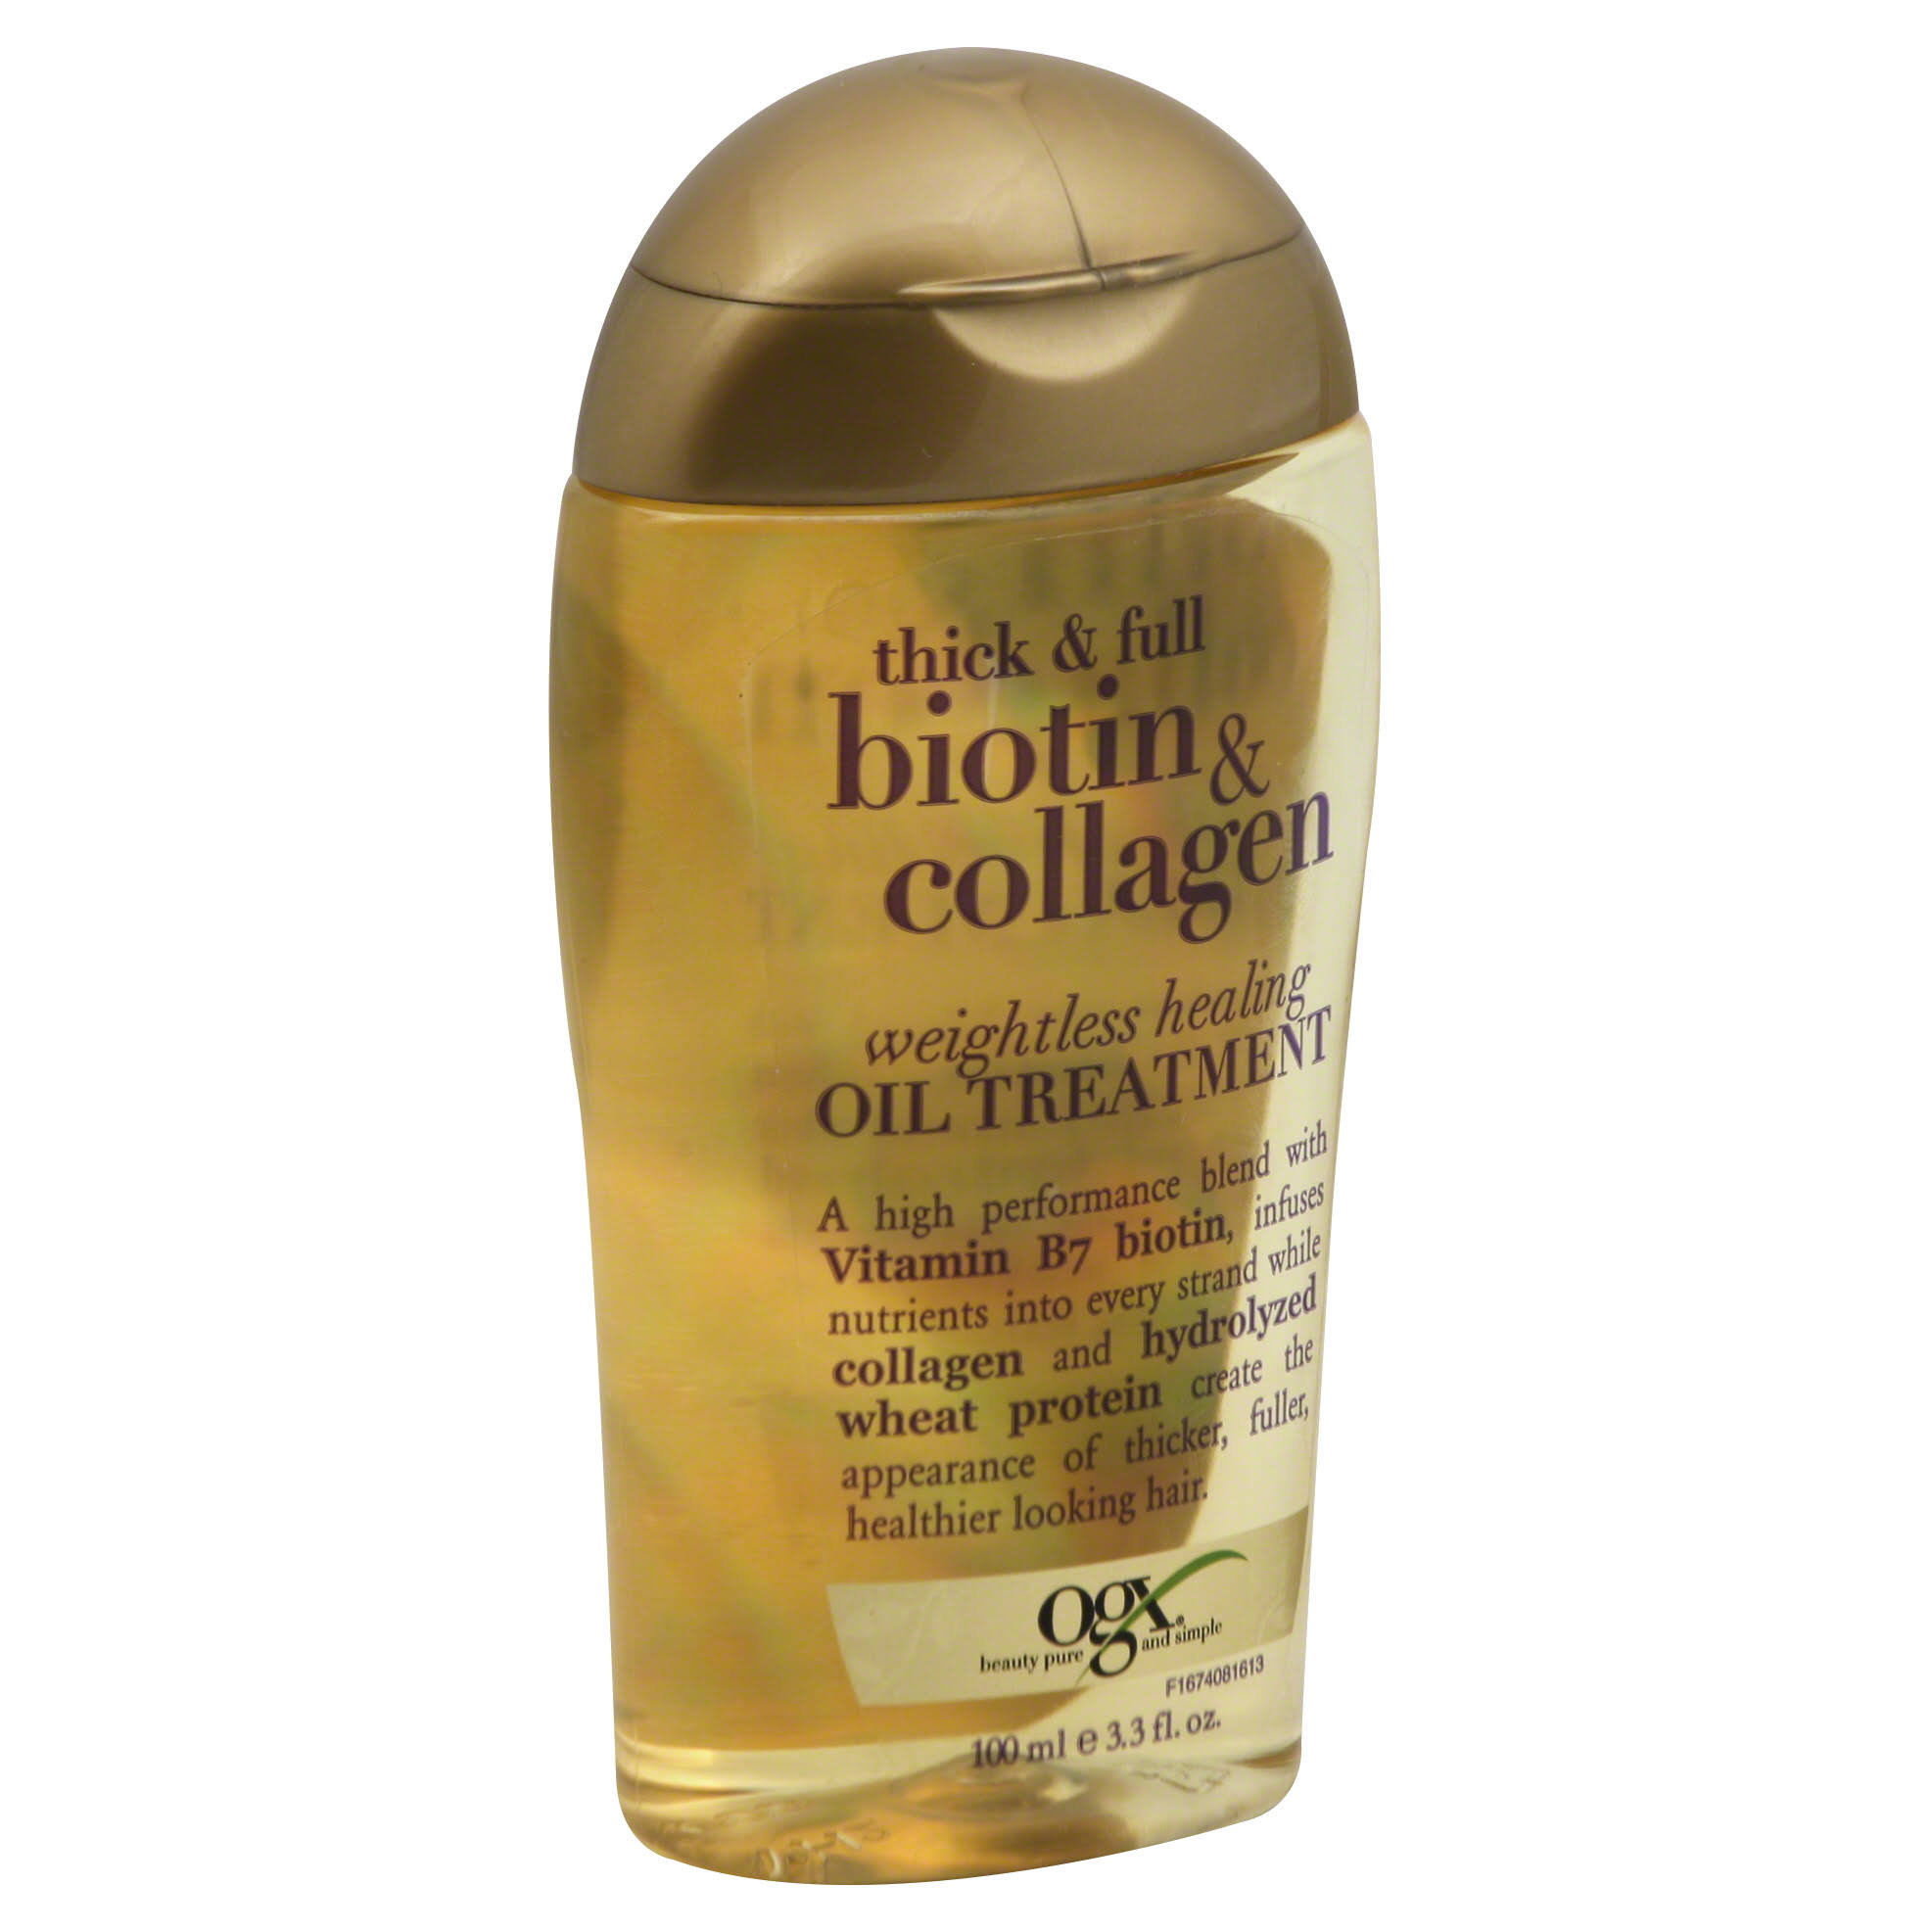 Ogx Biotin and Collagen Weightless Healing Oil Treatment - 100ml